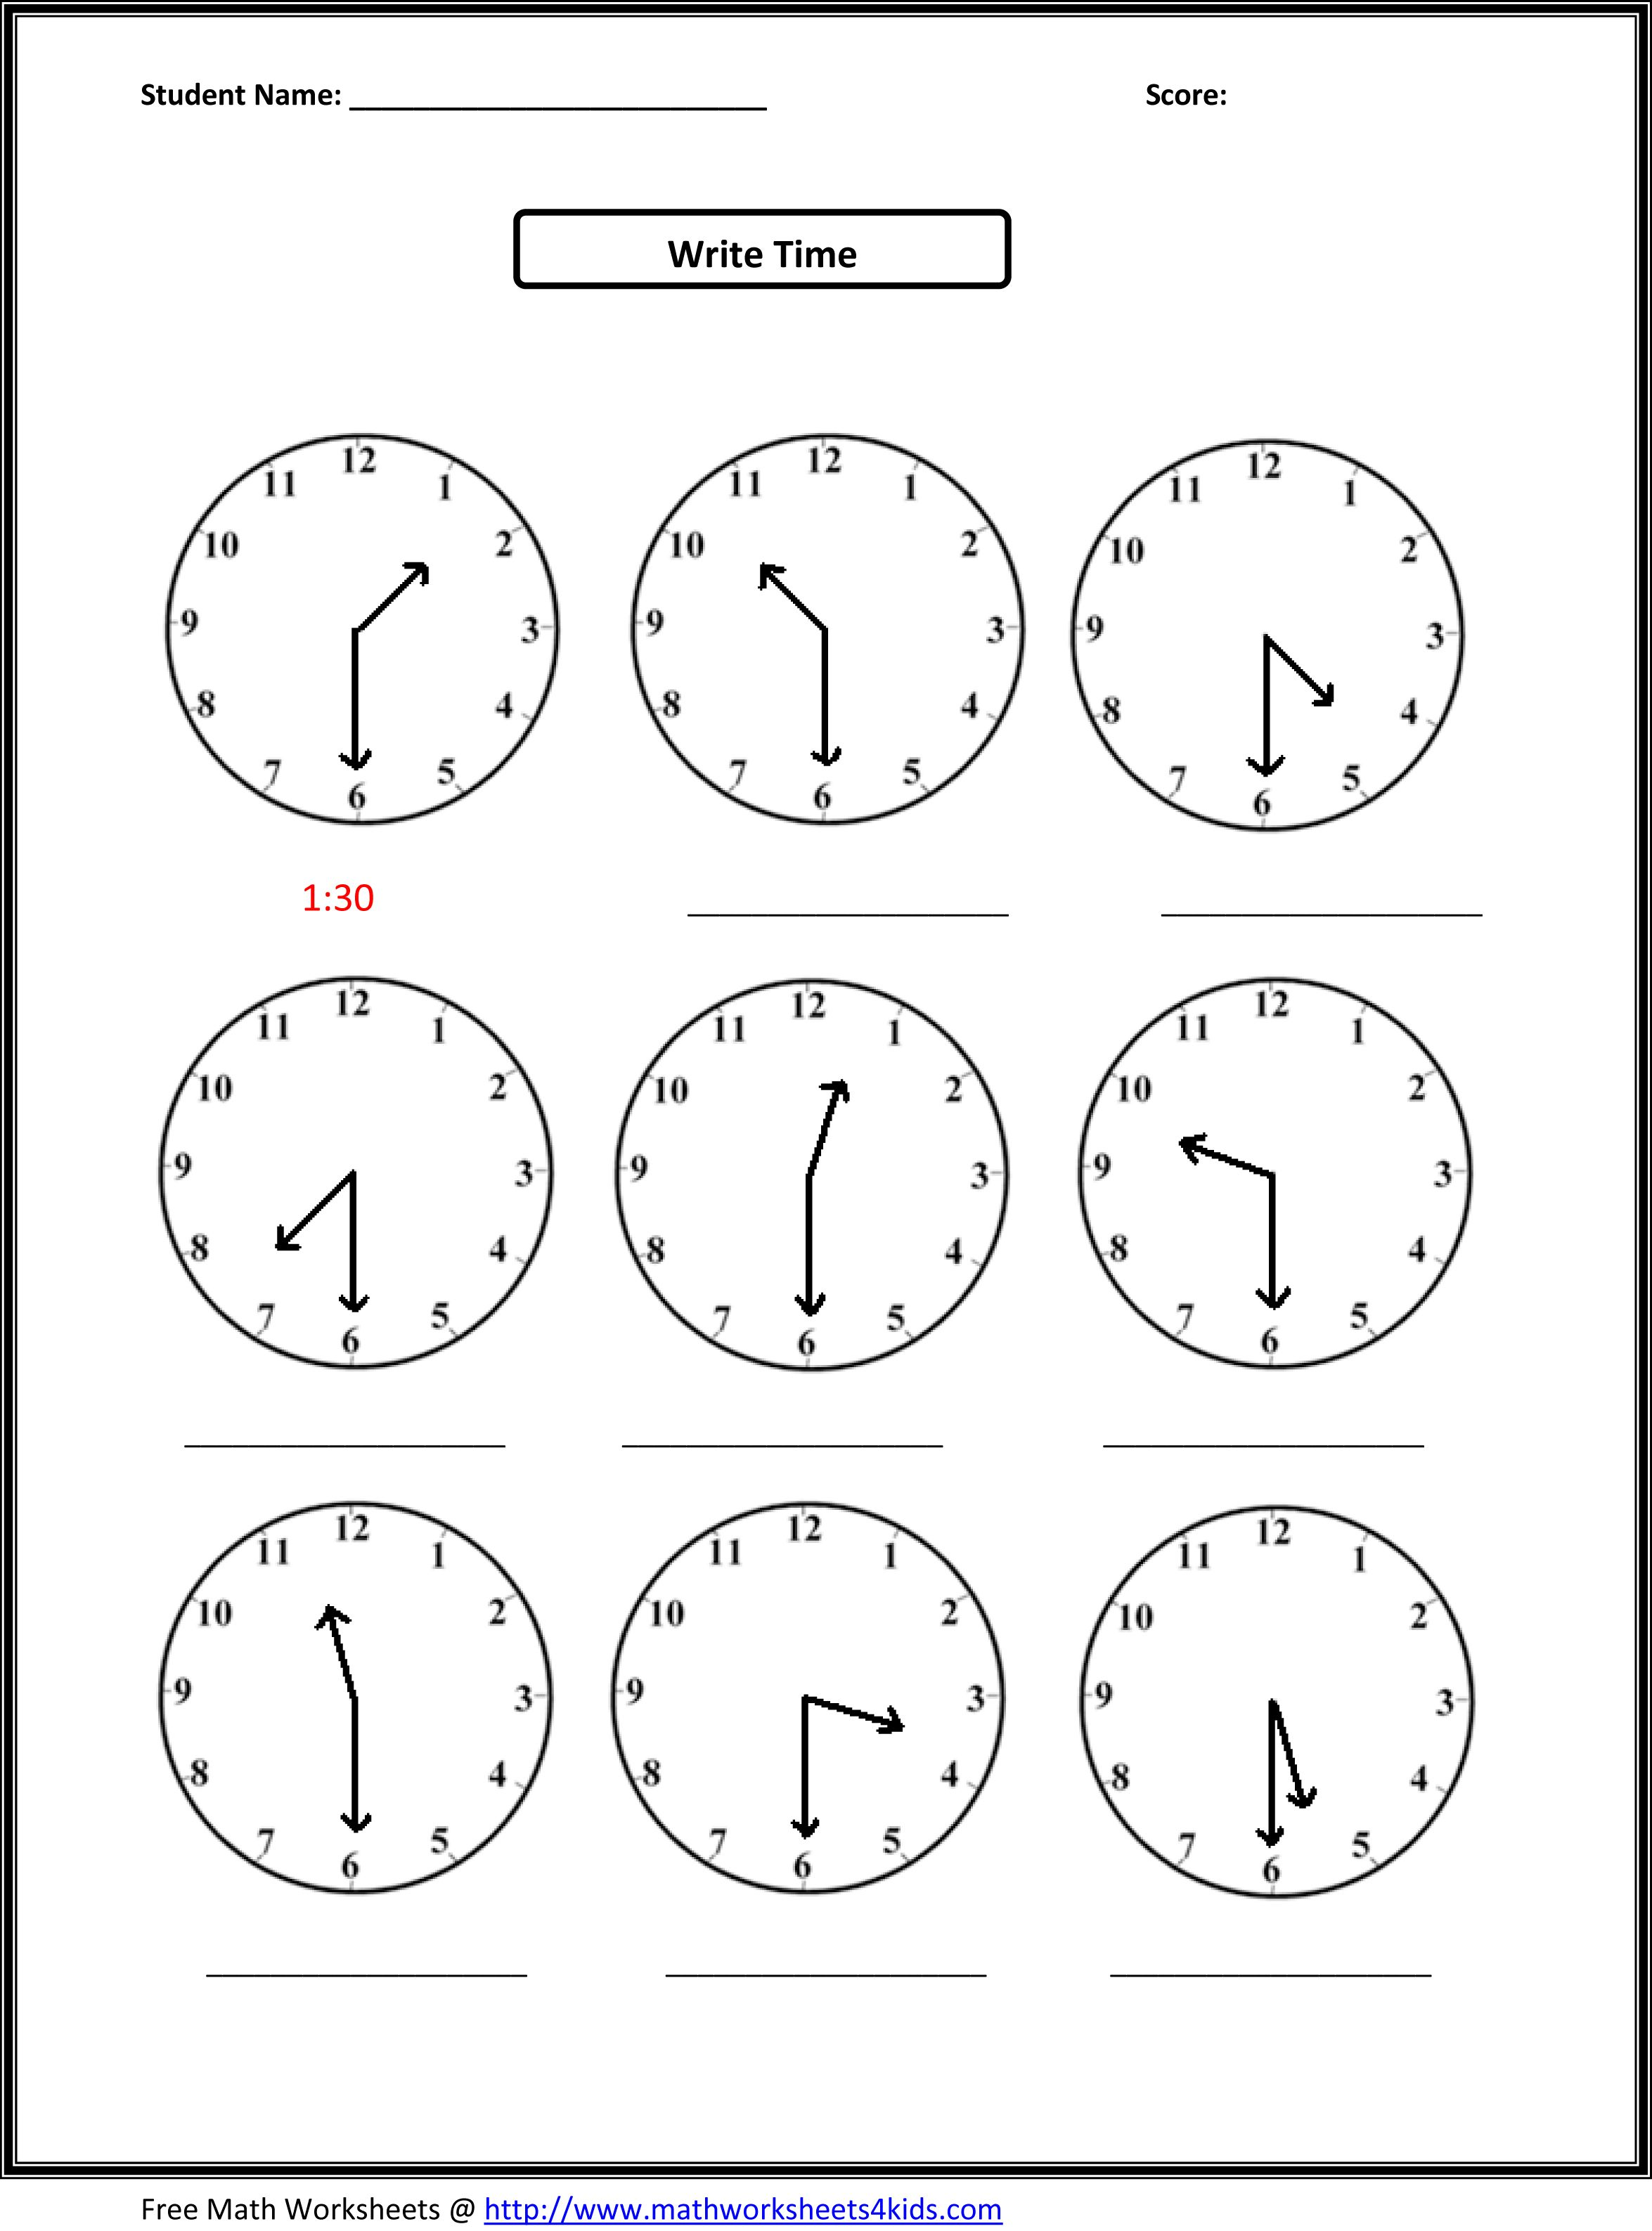 Weirdmailus  Sweet Worksheet On Time For Grade   Reocurent With Magnificent Free Printable Telling Time Worksheets Nd Grade  Reocurent With Adorable Free Printable Worksheets For Kindergarten Also Phase Changes Worksheet In Addition Nc  Allowance Worksheet And Multiplication Worksheets Grade  As Well As Carson Dellosa Worksheet Answers Additionally Homophones Worksheets From Reocurentcom With Weirdmailus  Magnificent Worksheet On Time For Grade   Reocurent With Adorable Free Printable Telling Time Worksheets Nd Grade  Reocurent And Sweet Free Printable Worksheets For Kindergarten Also Phase Changes Worksheet In Addition Nc  Allowance Worksheet From Reocurentcom